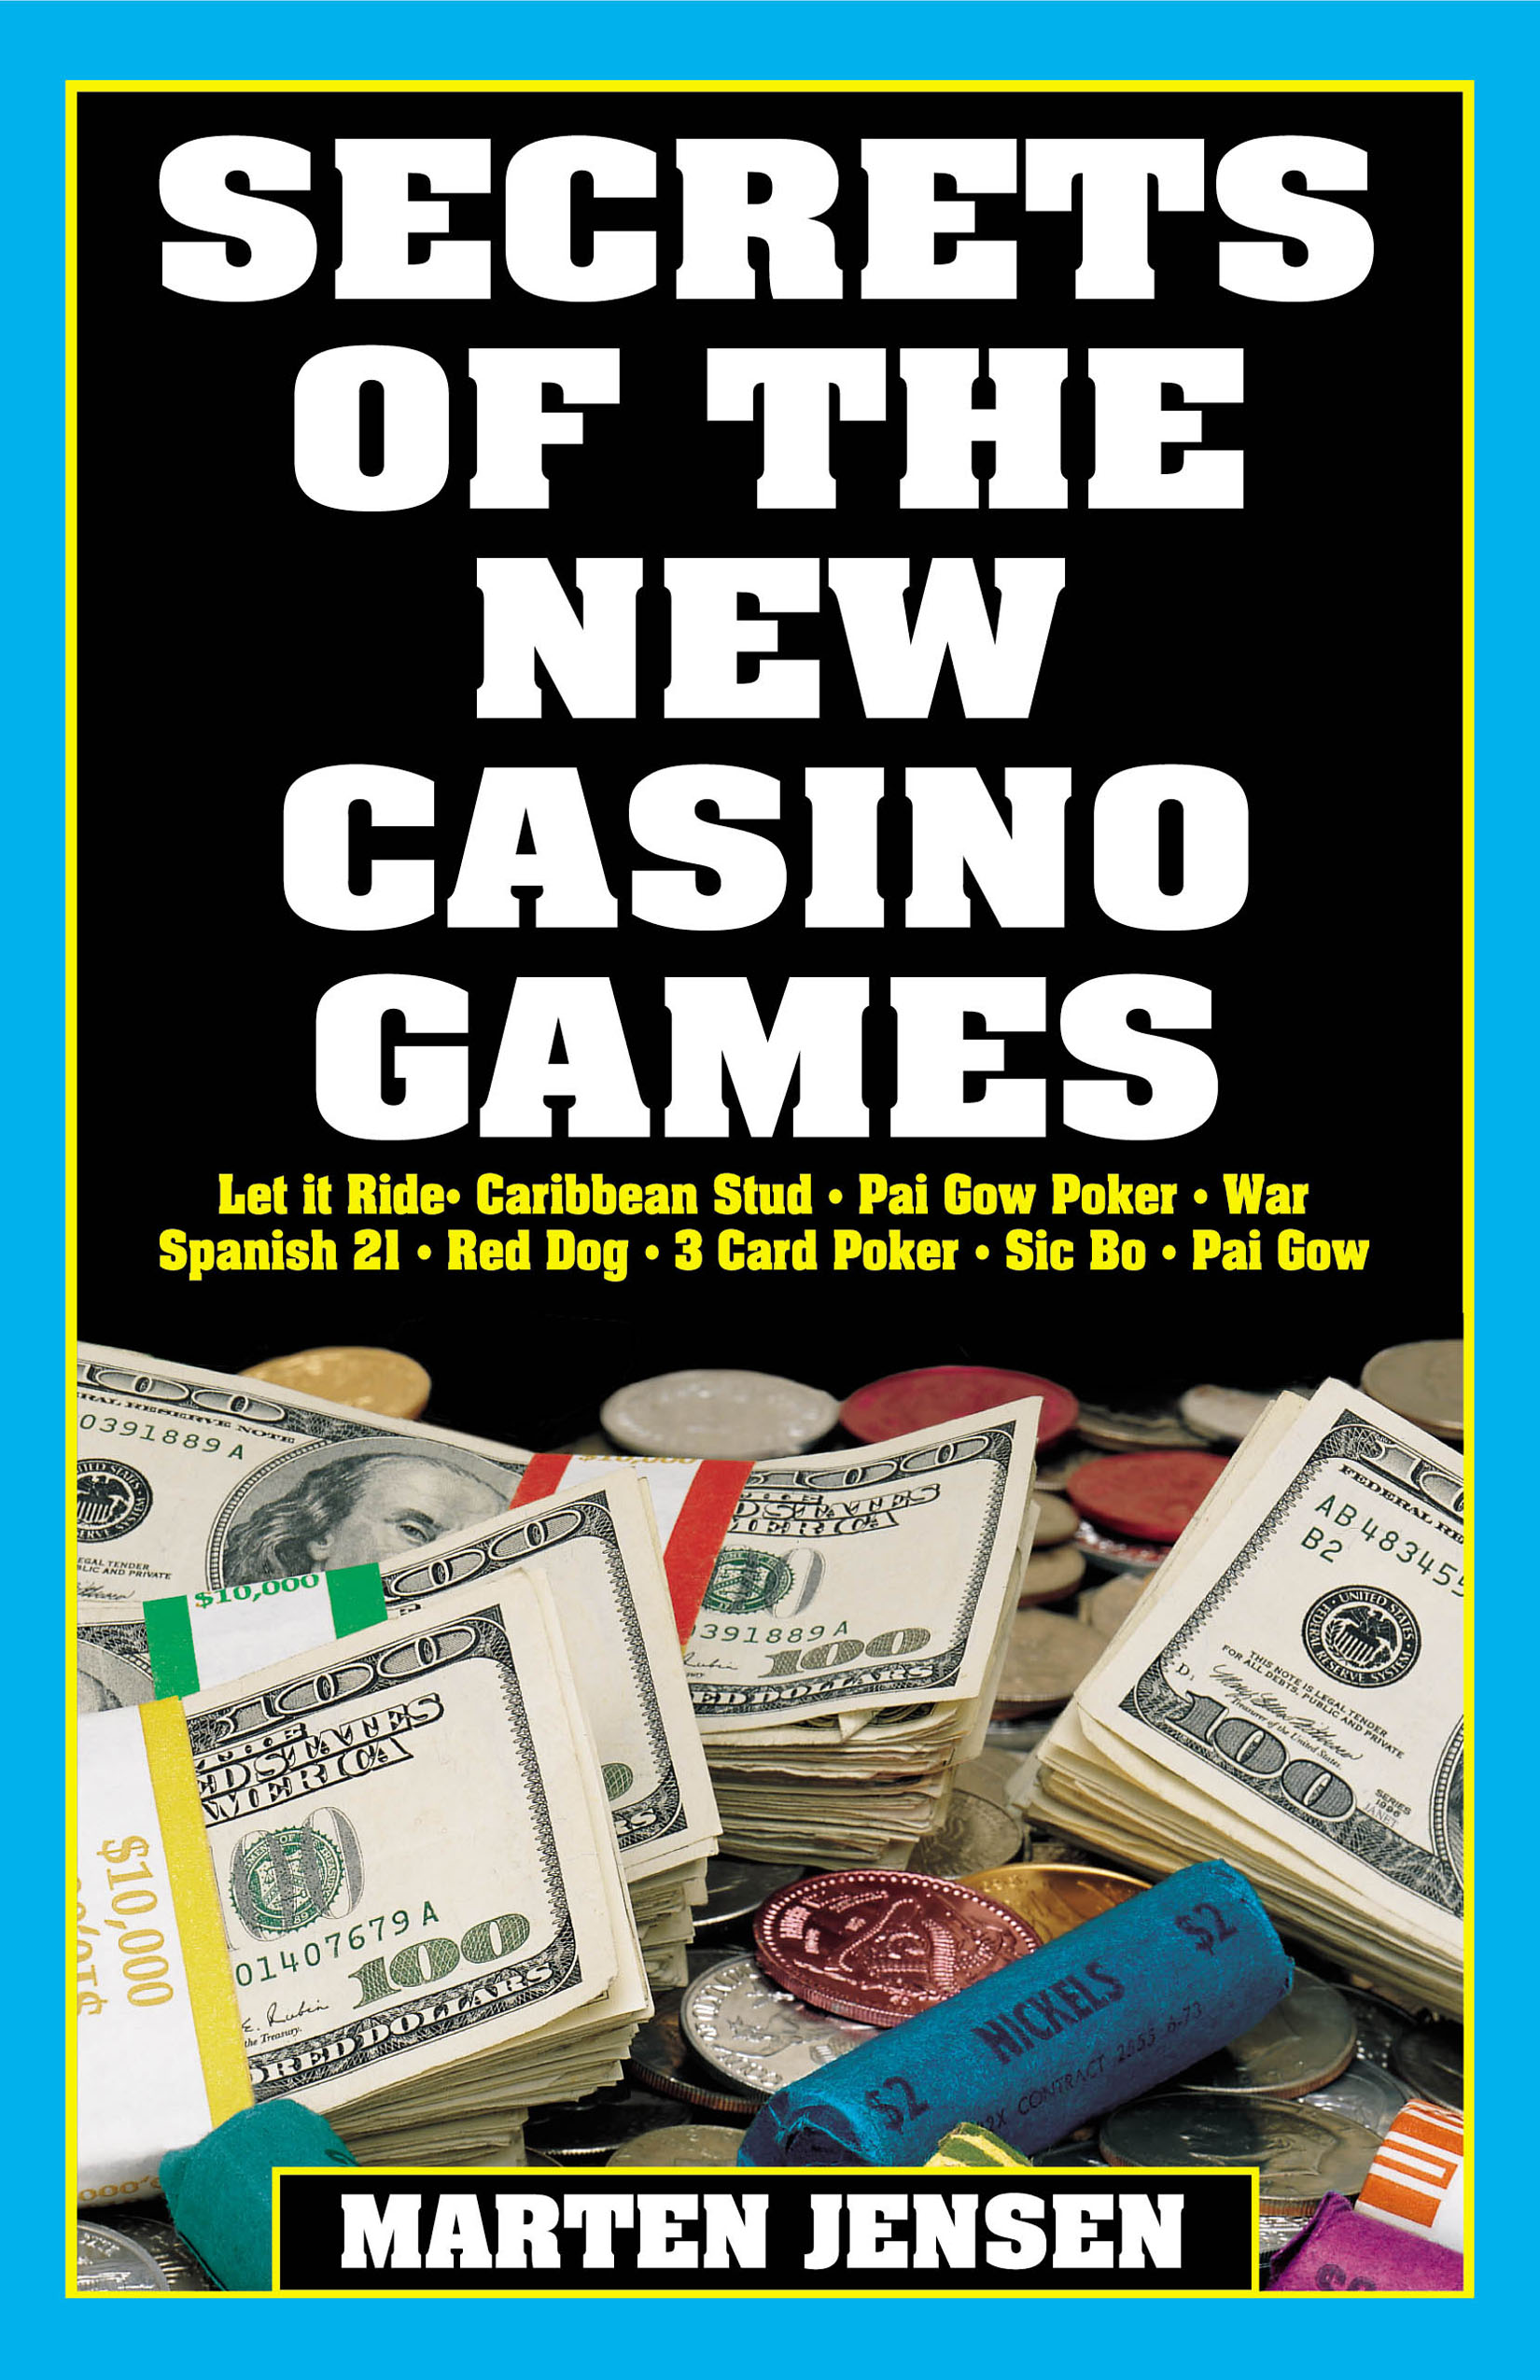 The 17 Best Gambling Books Money Can Buy in 2019